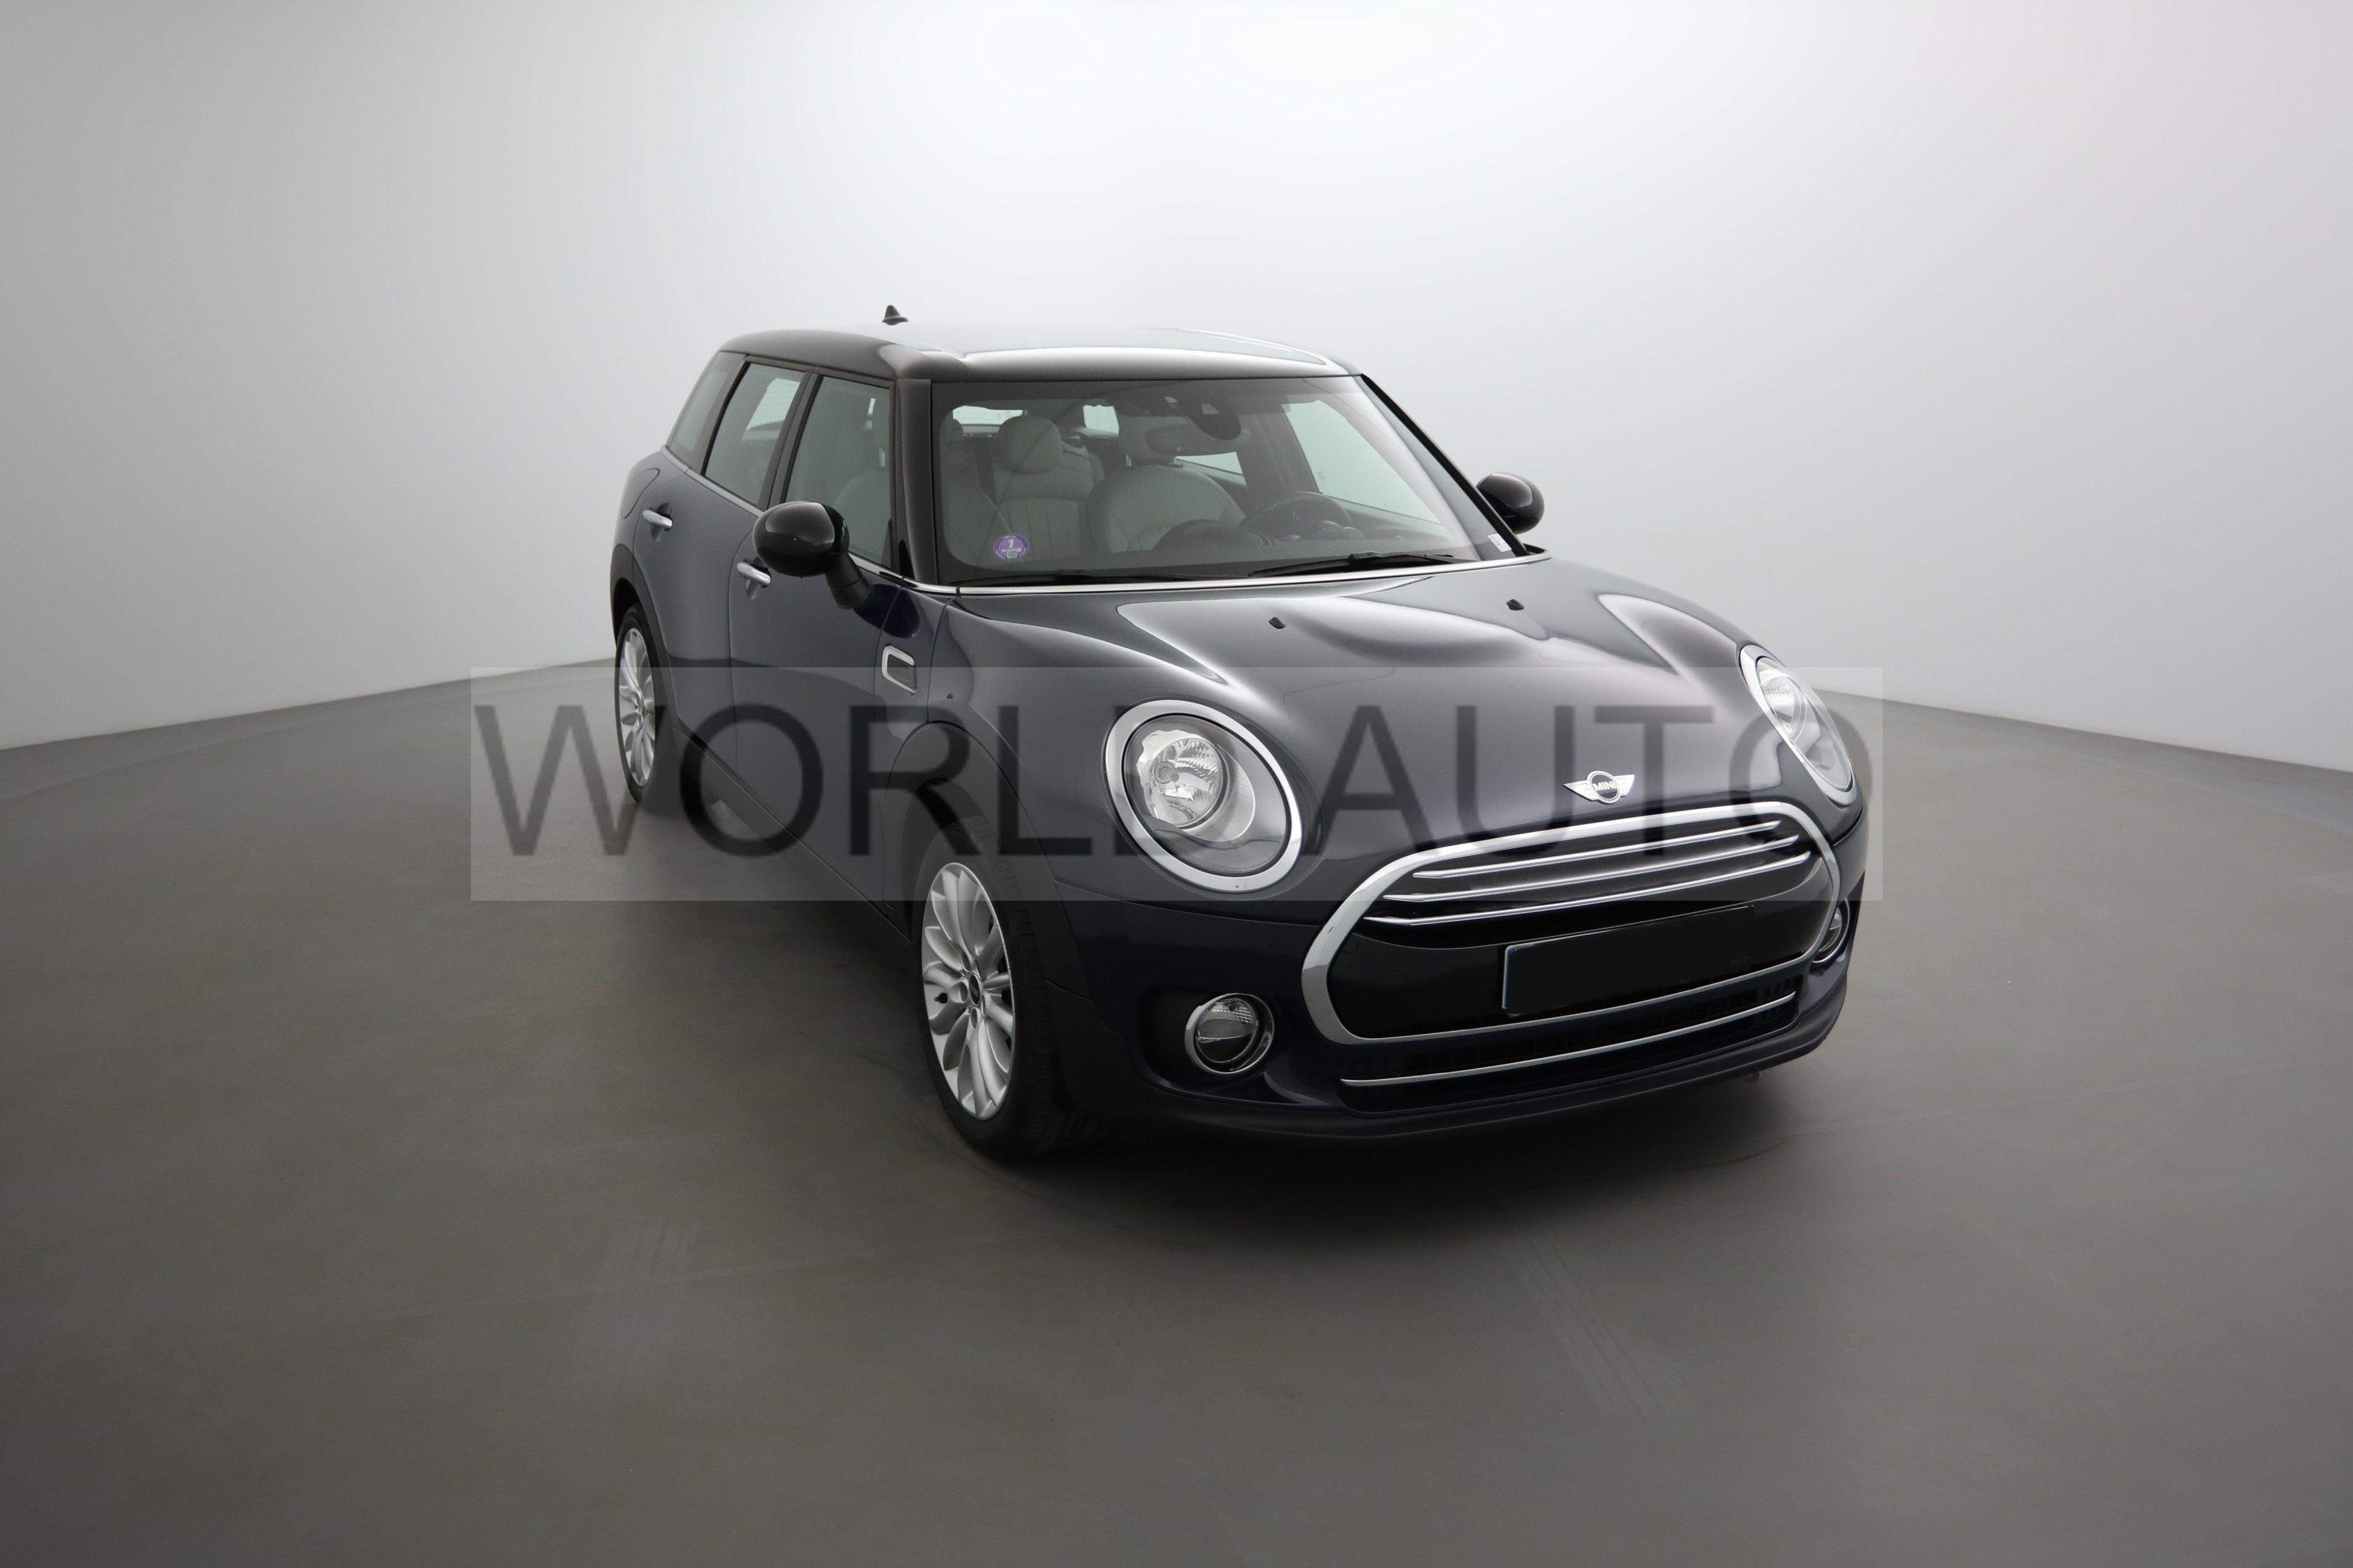 Mini Mini Clubman F54 Villefontaine 177613 World Auto